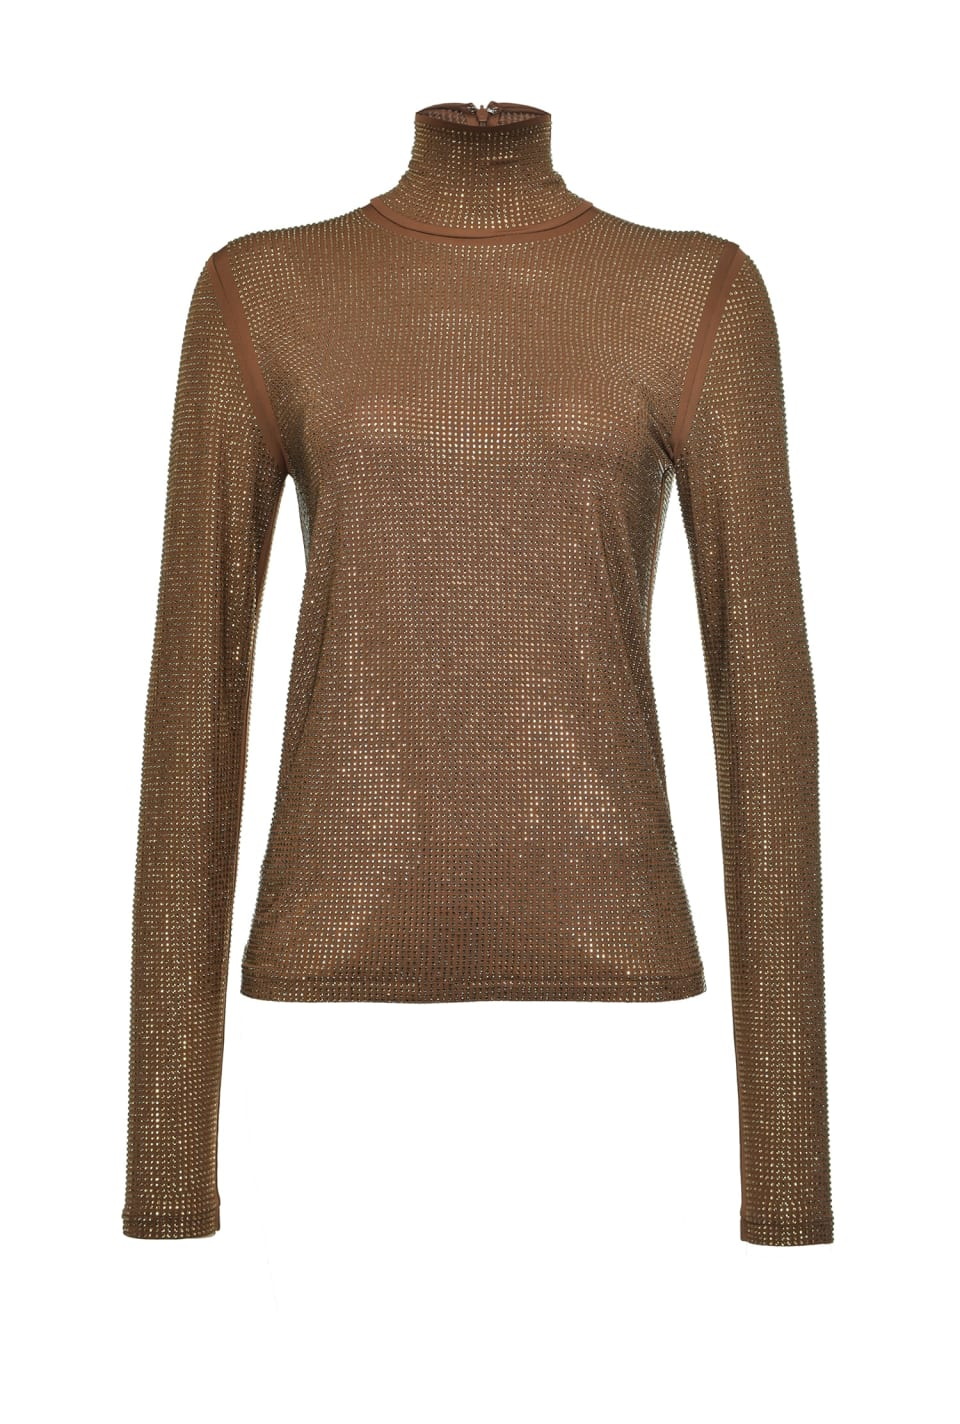 Full rhinestone turtleneck - Pinko